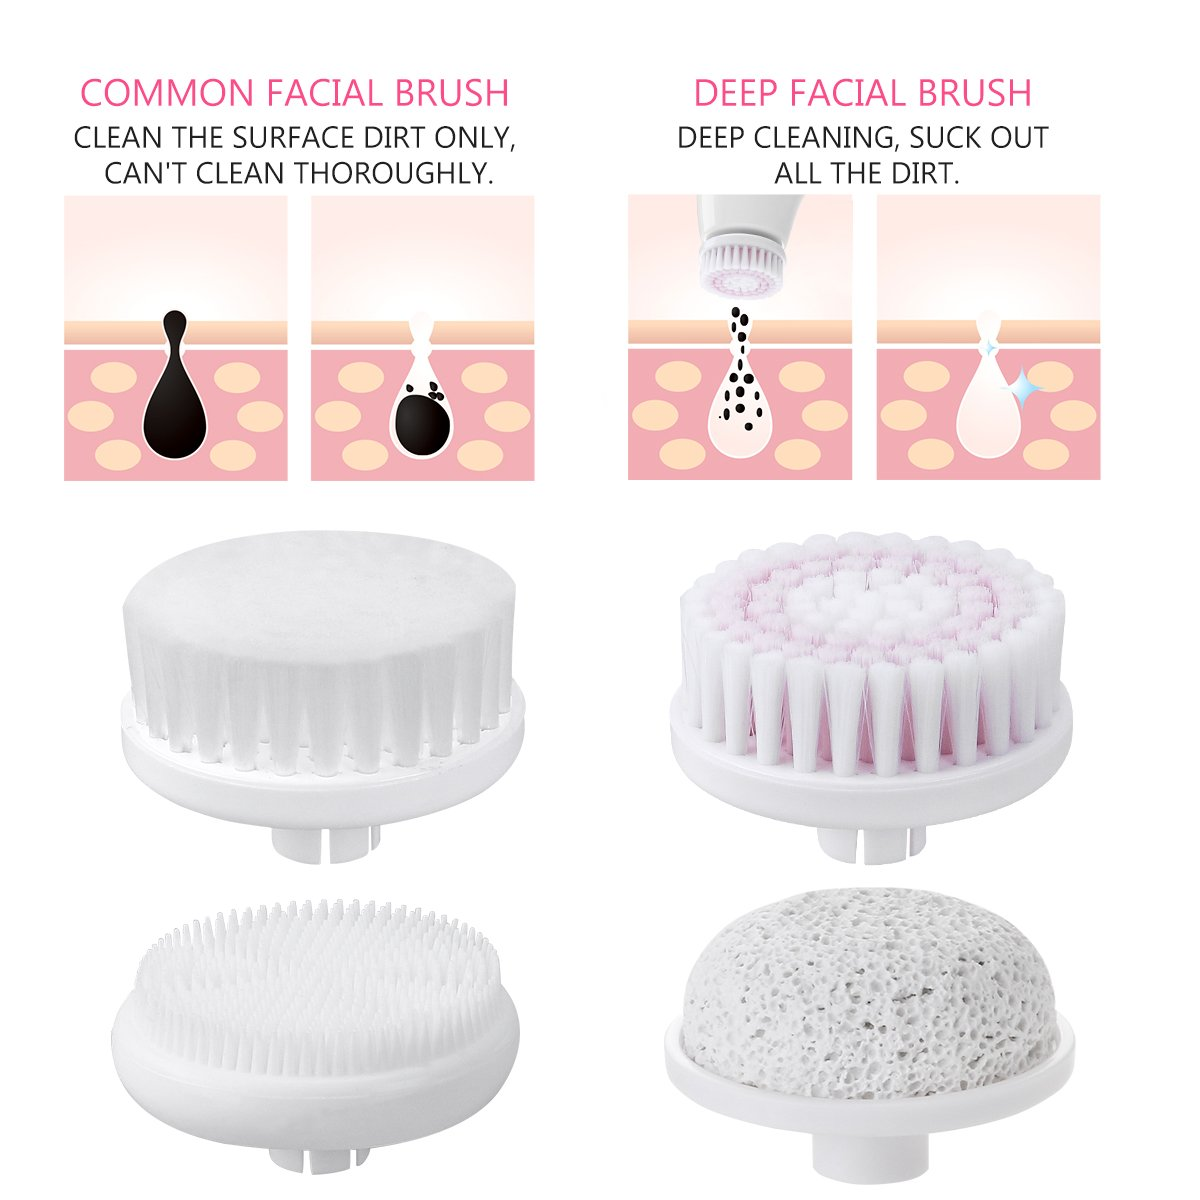 4 Pcs Replacement Brush Heads ONLY for corresponding 4 in1 Facial Brushes